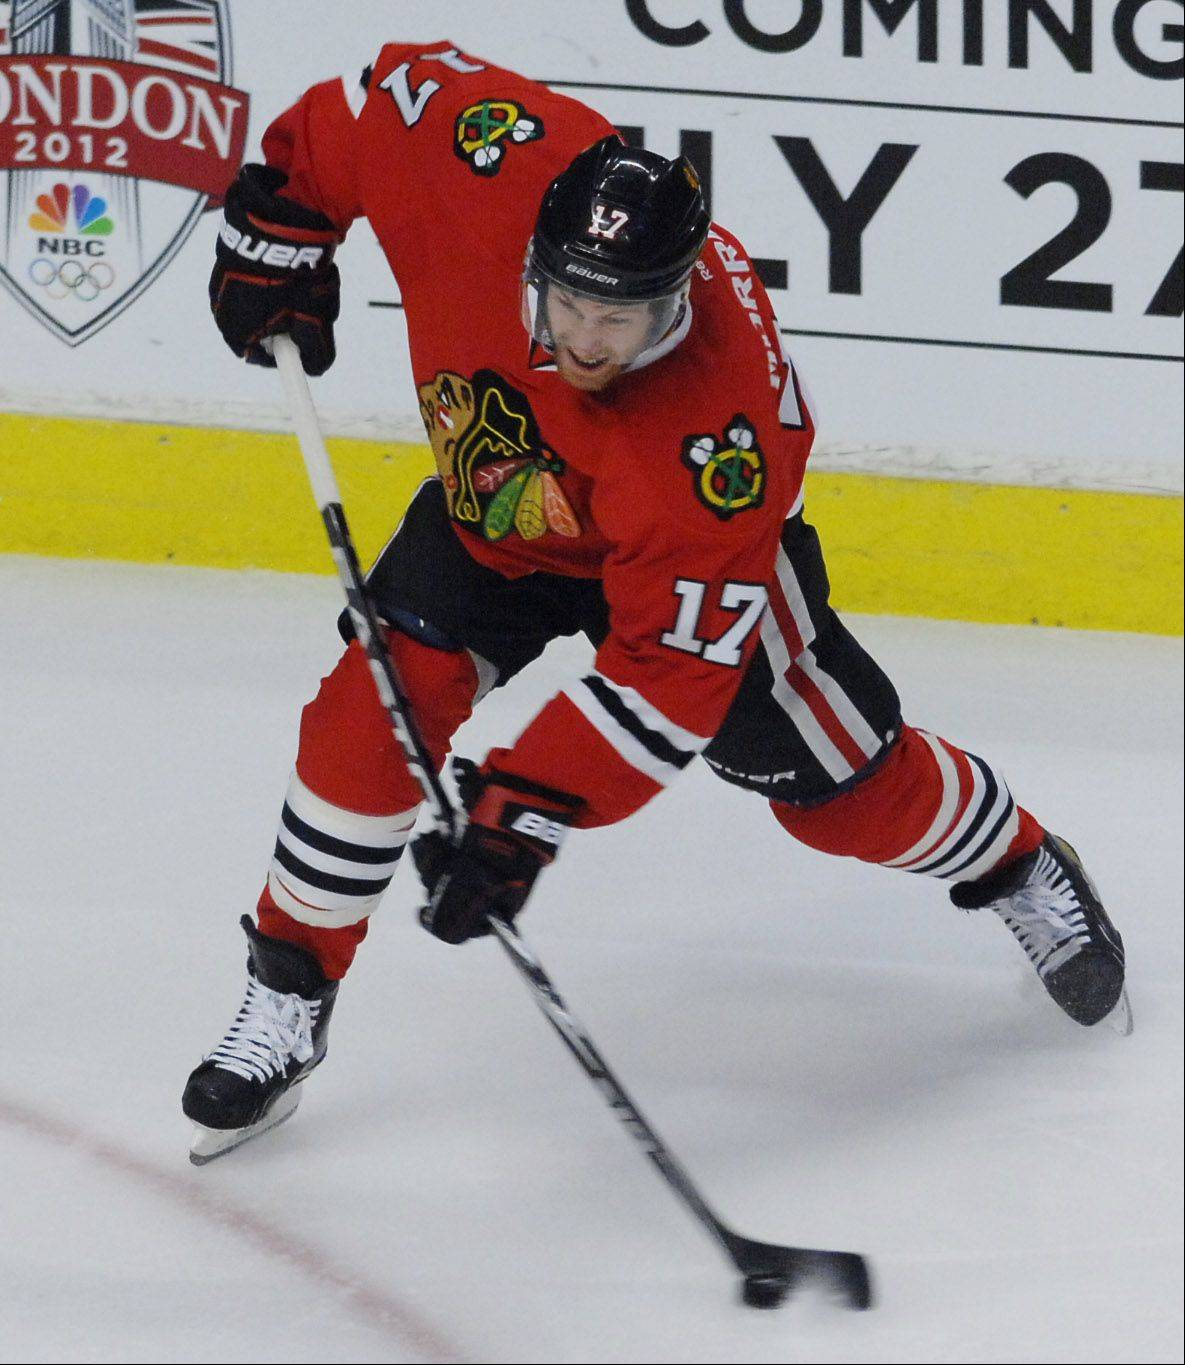 Chicago Blackhawks' center Brendan Morrison fires a goal against the Phoenix Coyotes.